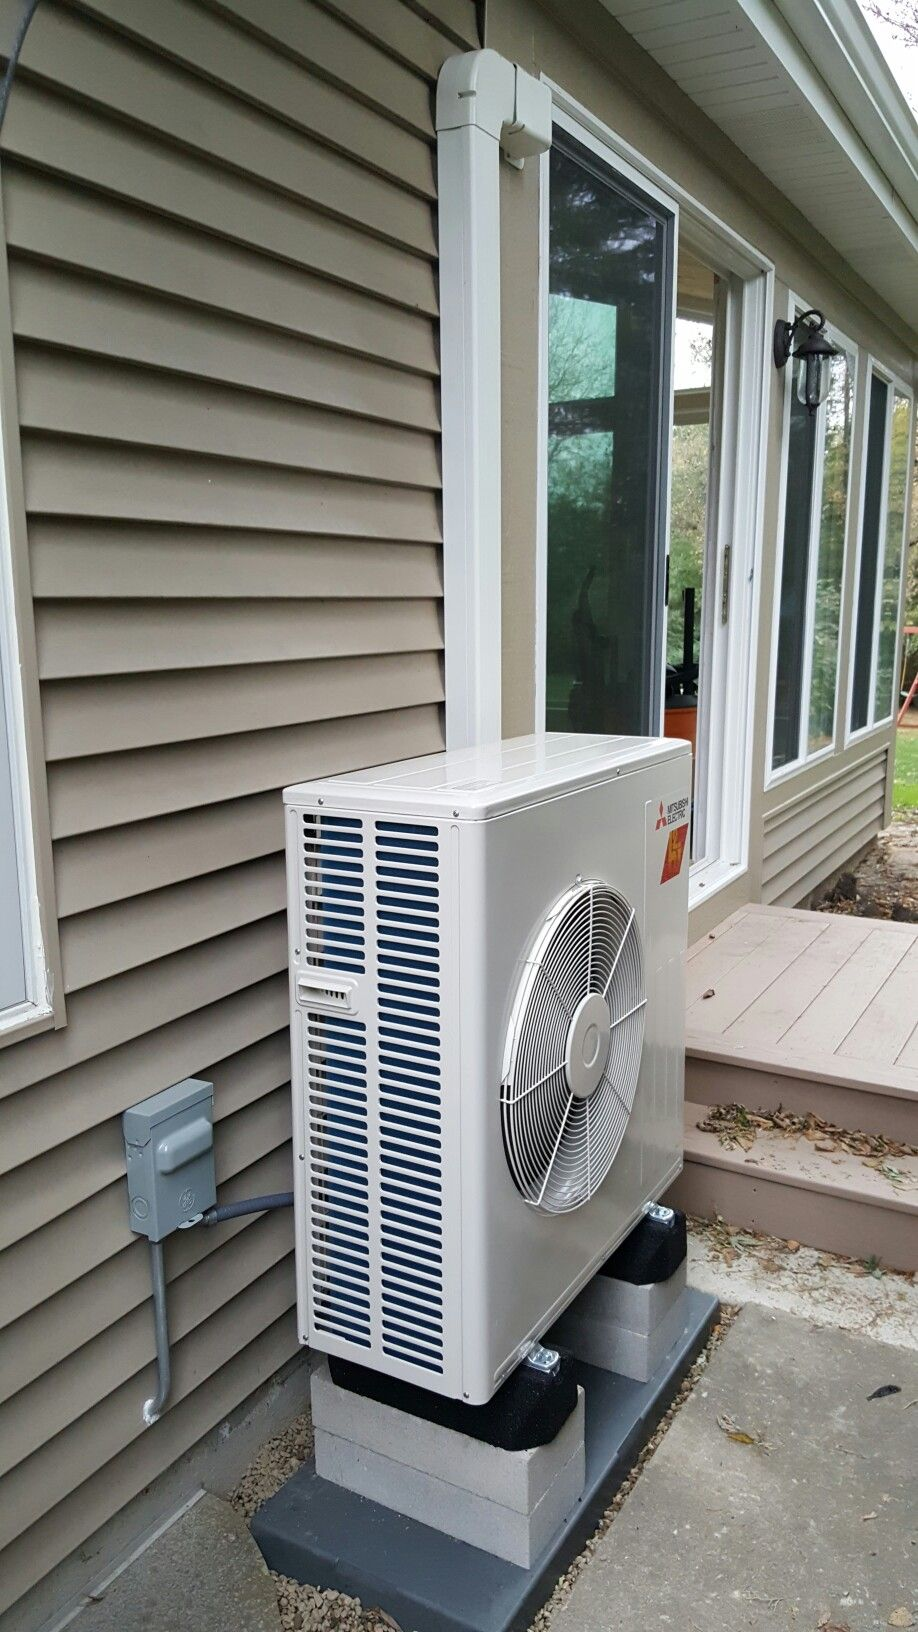 Fh18 Mitsubishi Ductless Heating And Cooling System